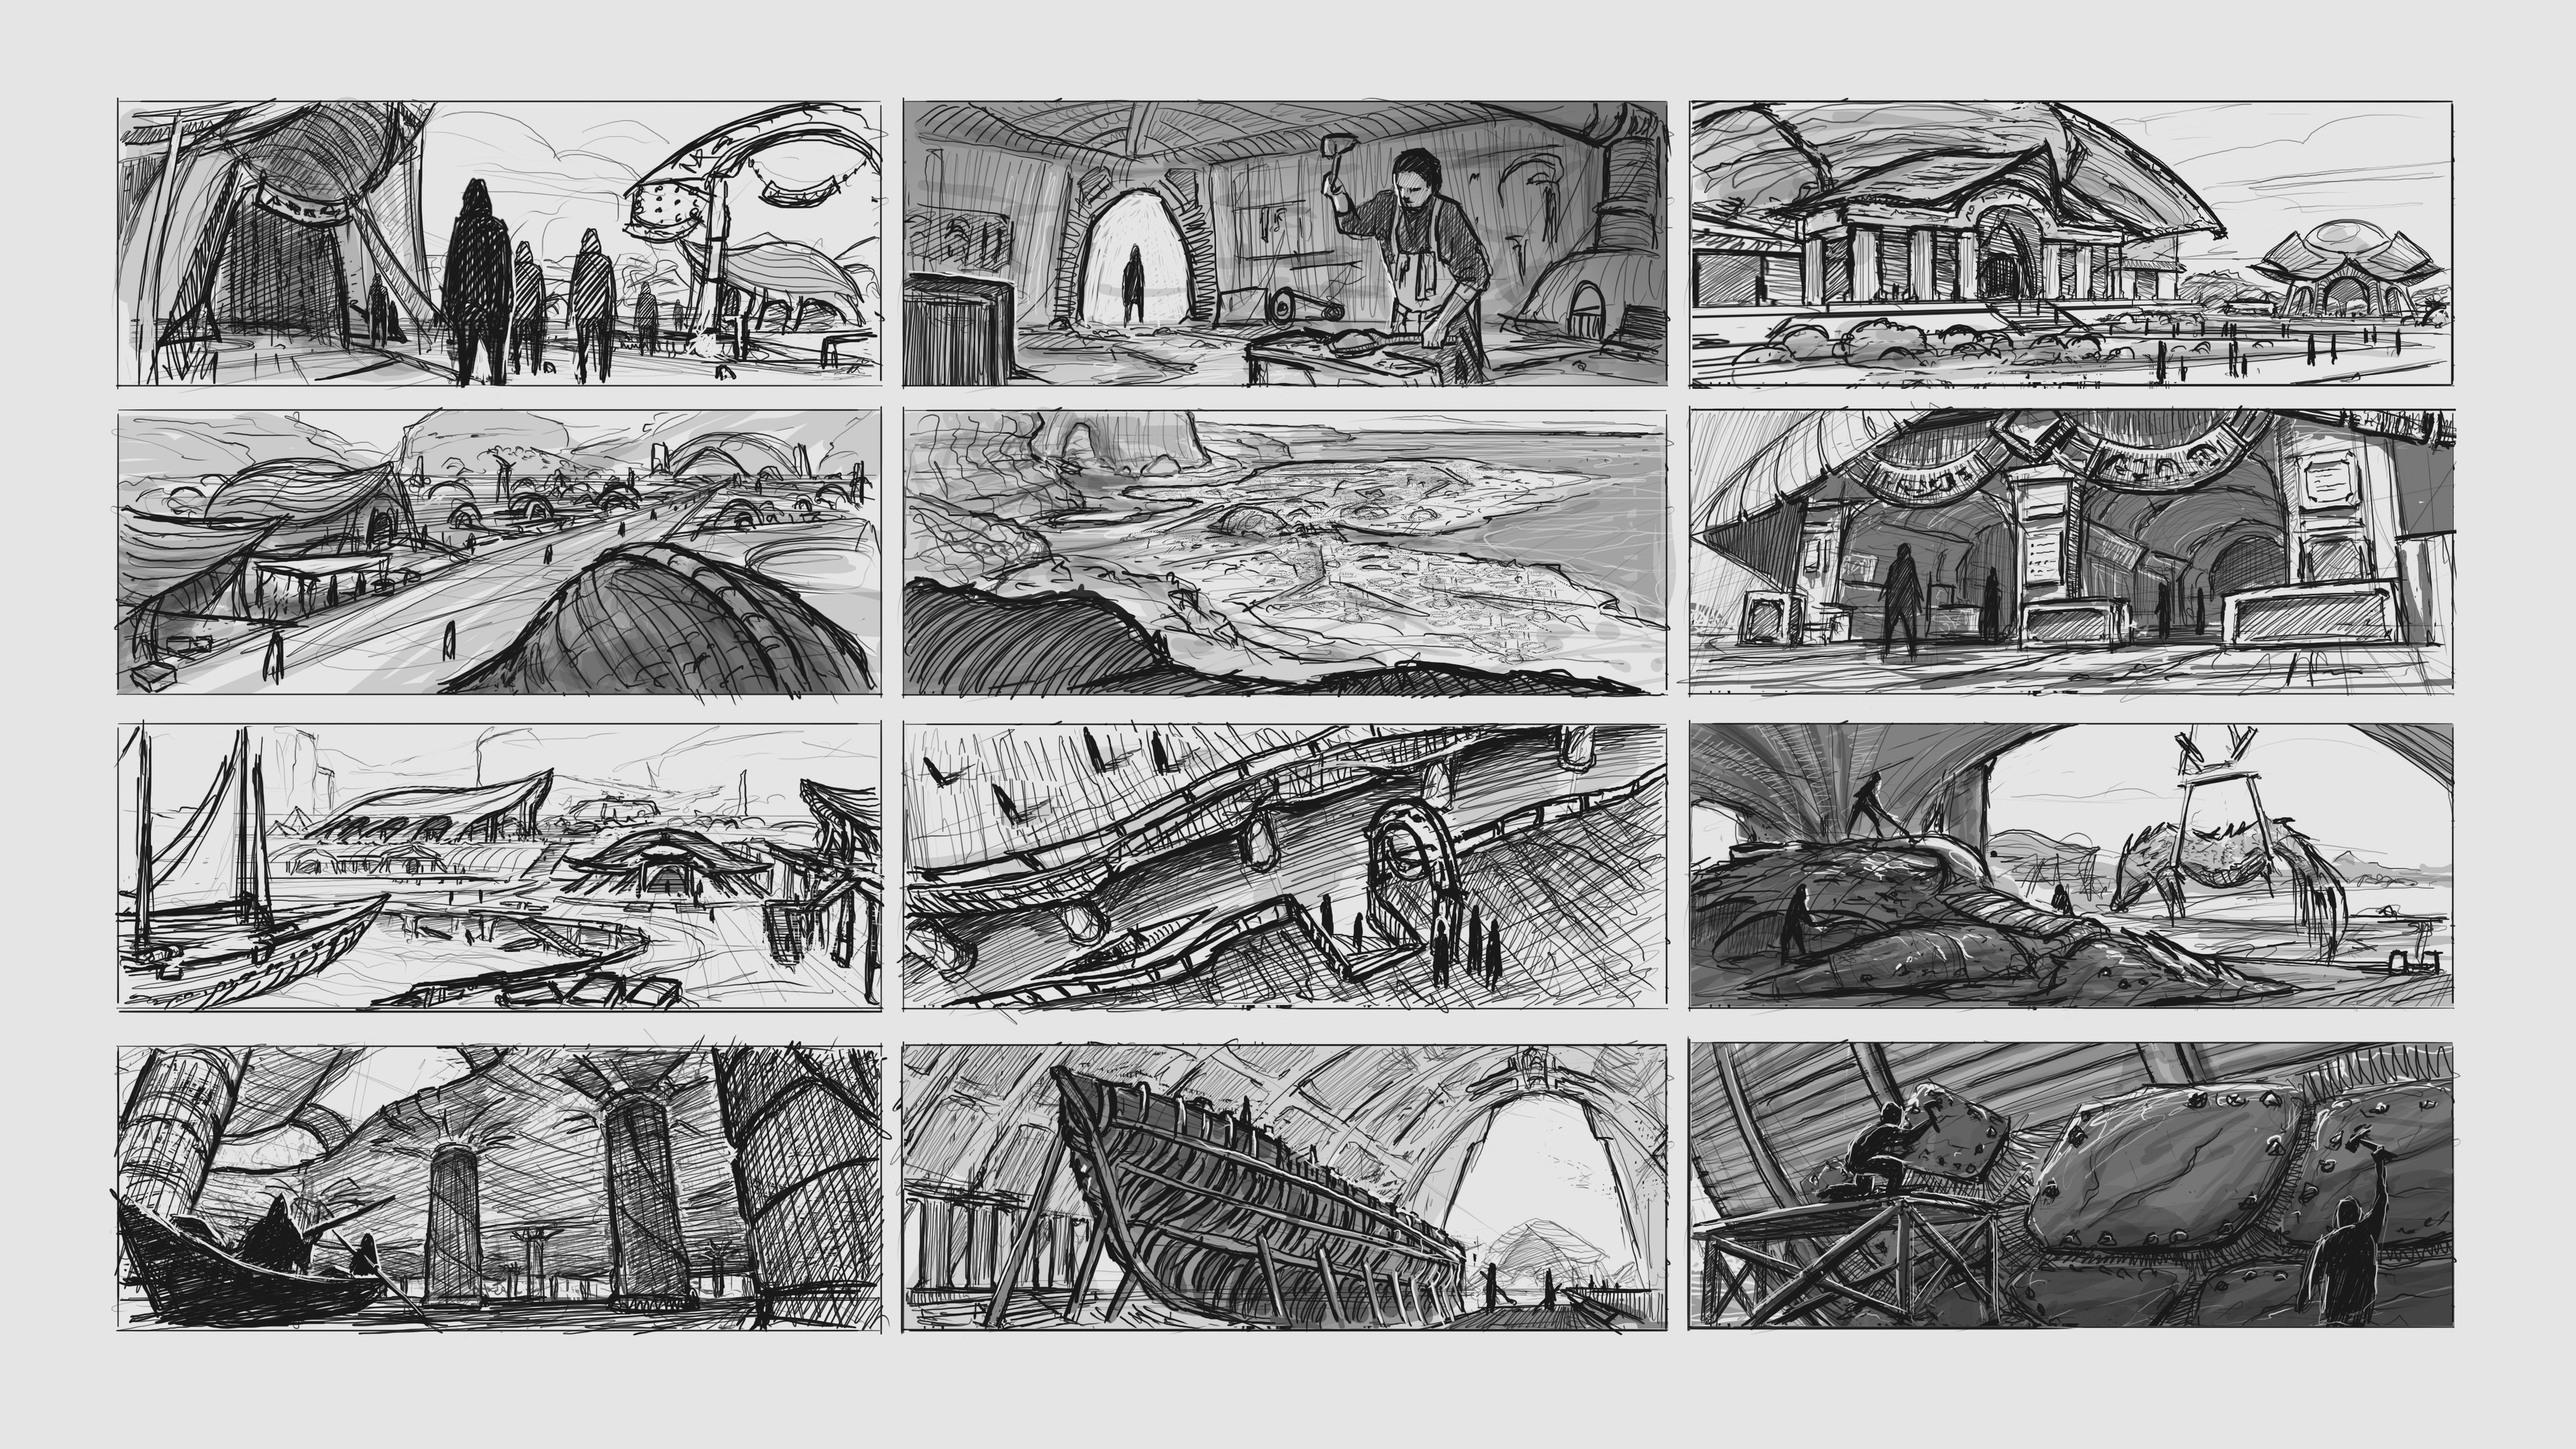 Thumbnail sketches of different shots across the city.